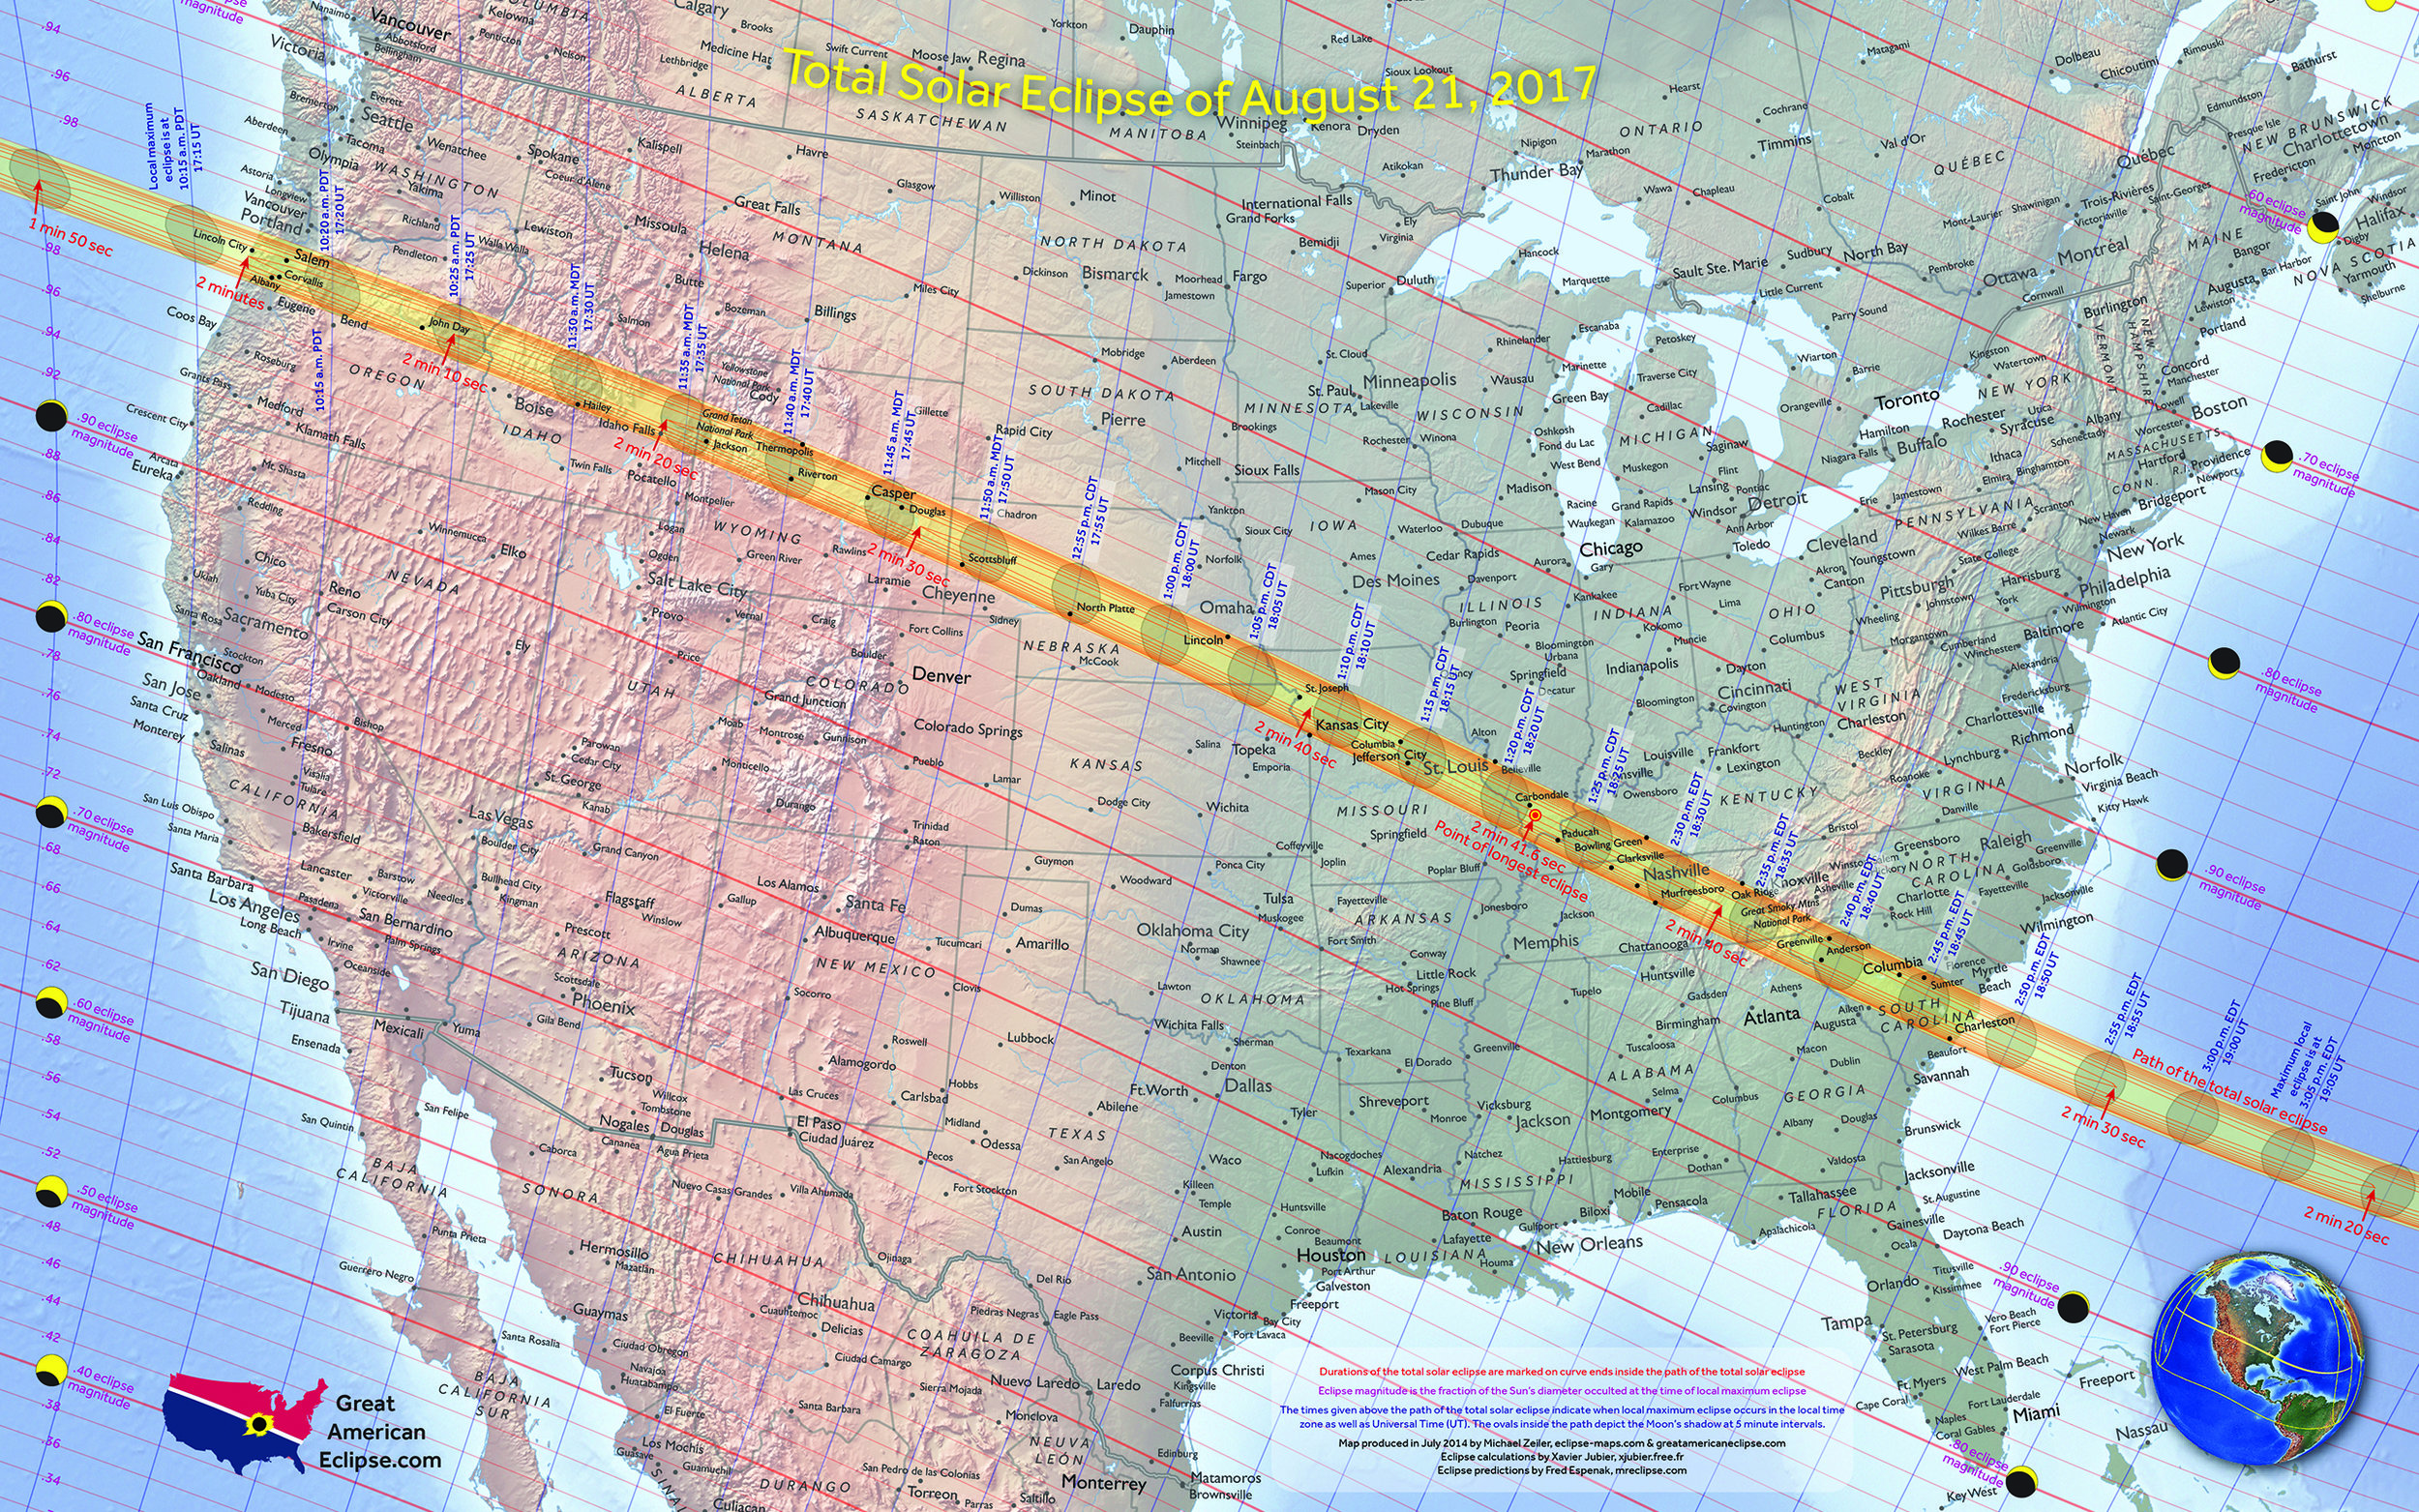 Ground track of eclipse. Credit: https://www.greatamericaneclipse.com/